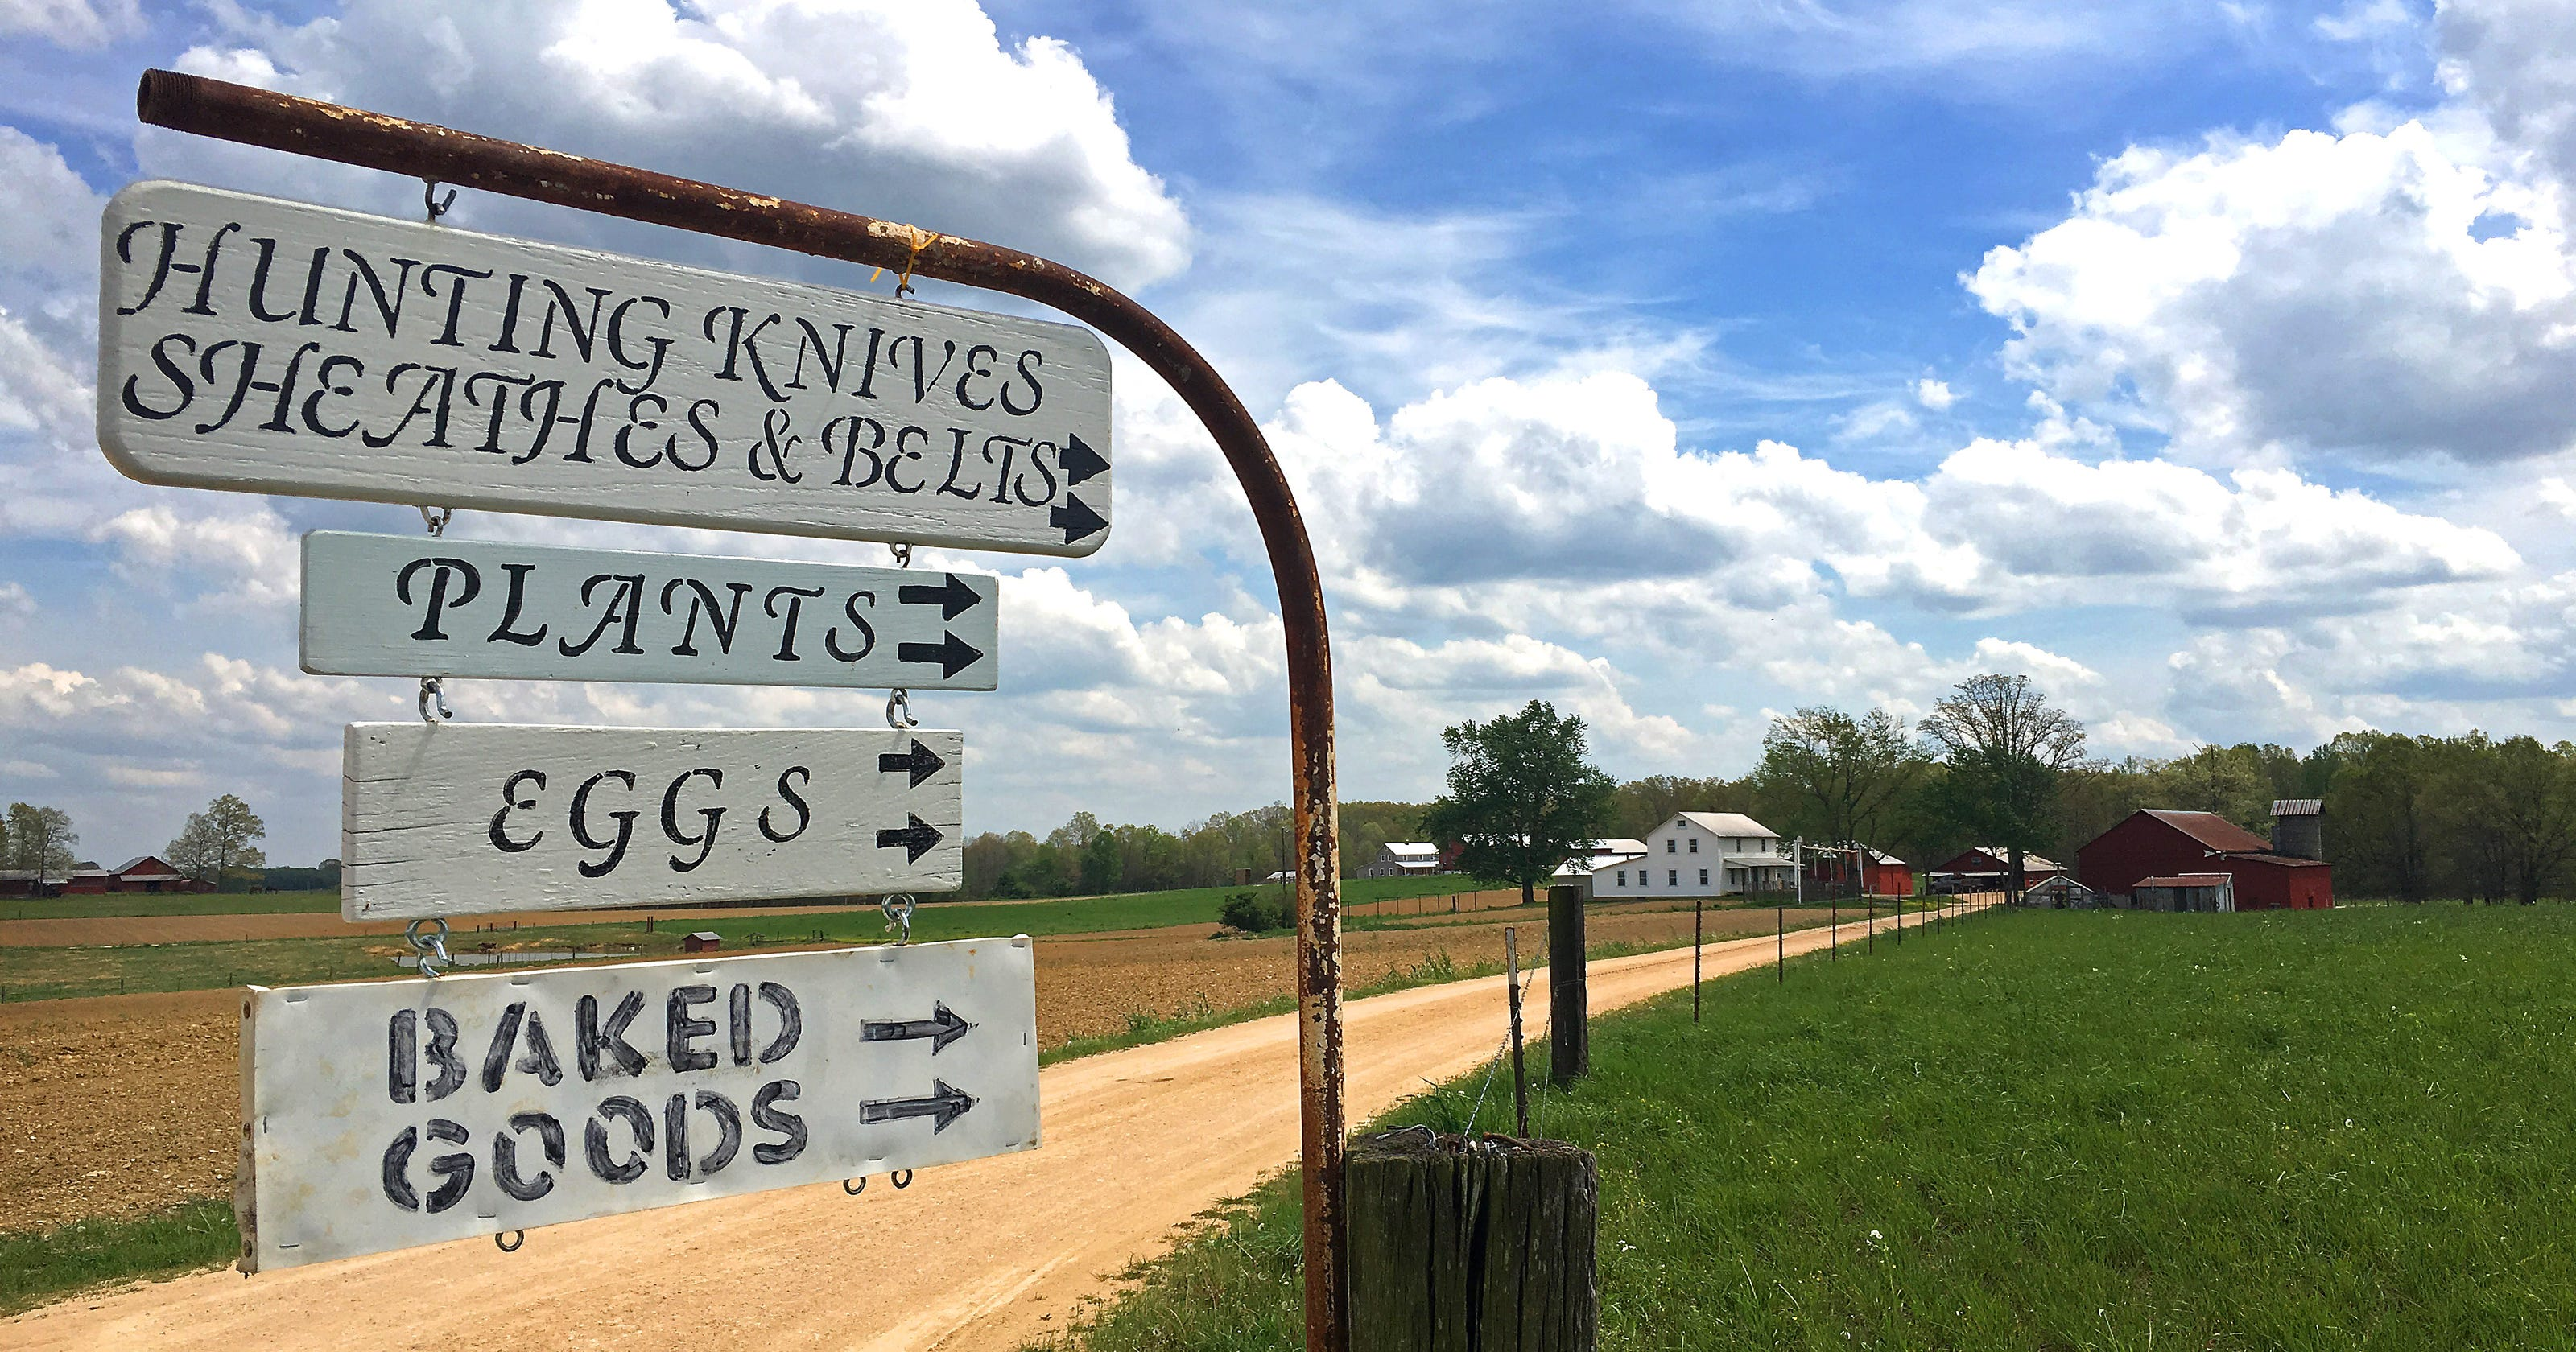 Tennessee's Amish country: Visiting Ethridge